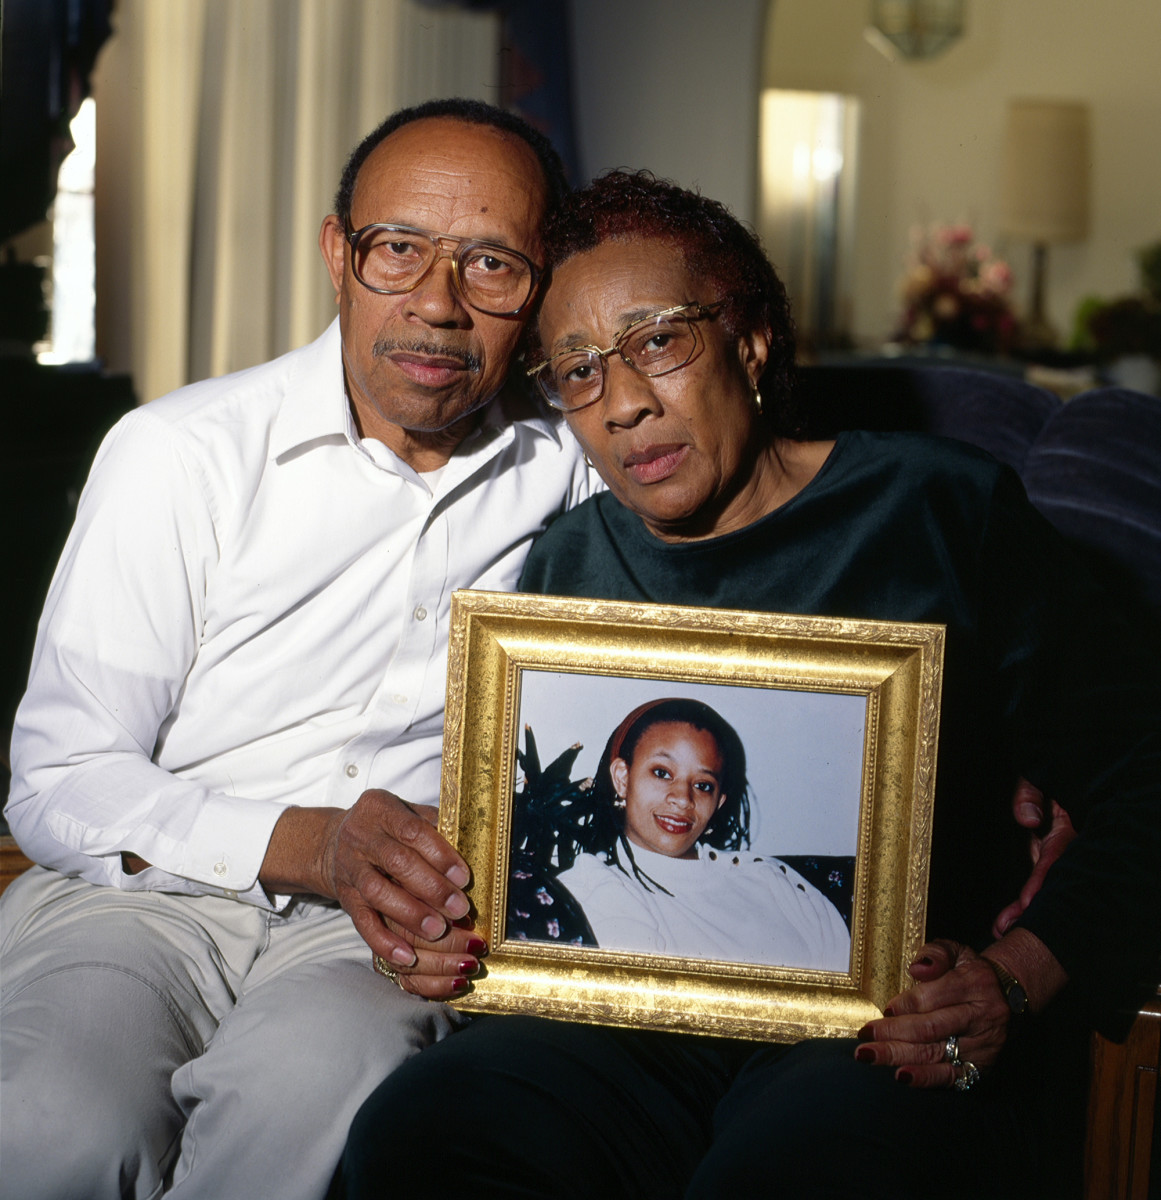 Alvin and Hazel Hayes hold a photo of their late daughter, Althea, in 1999. Hazel died in 2005.